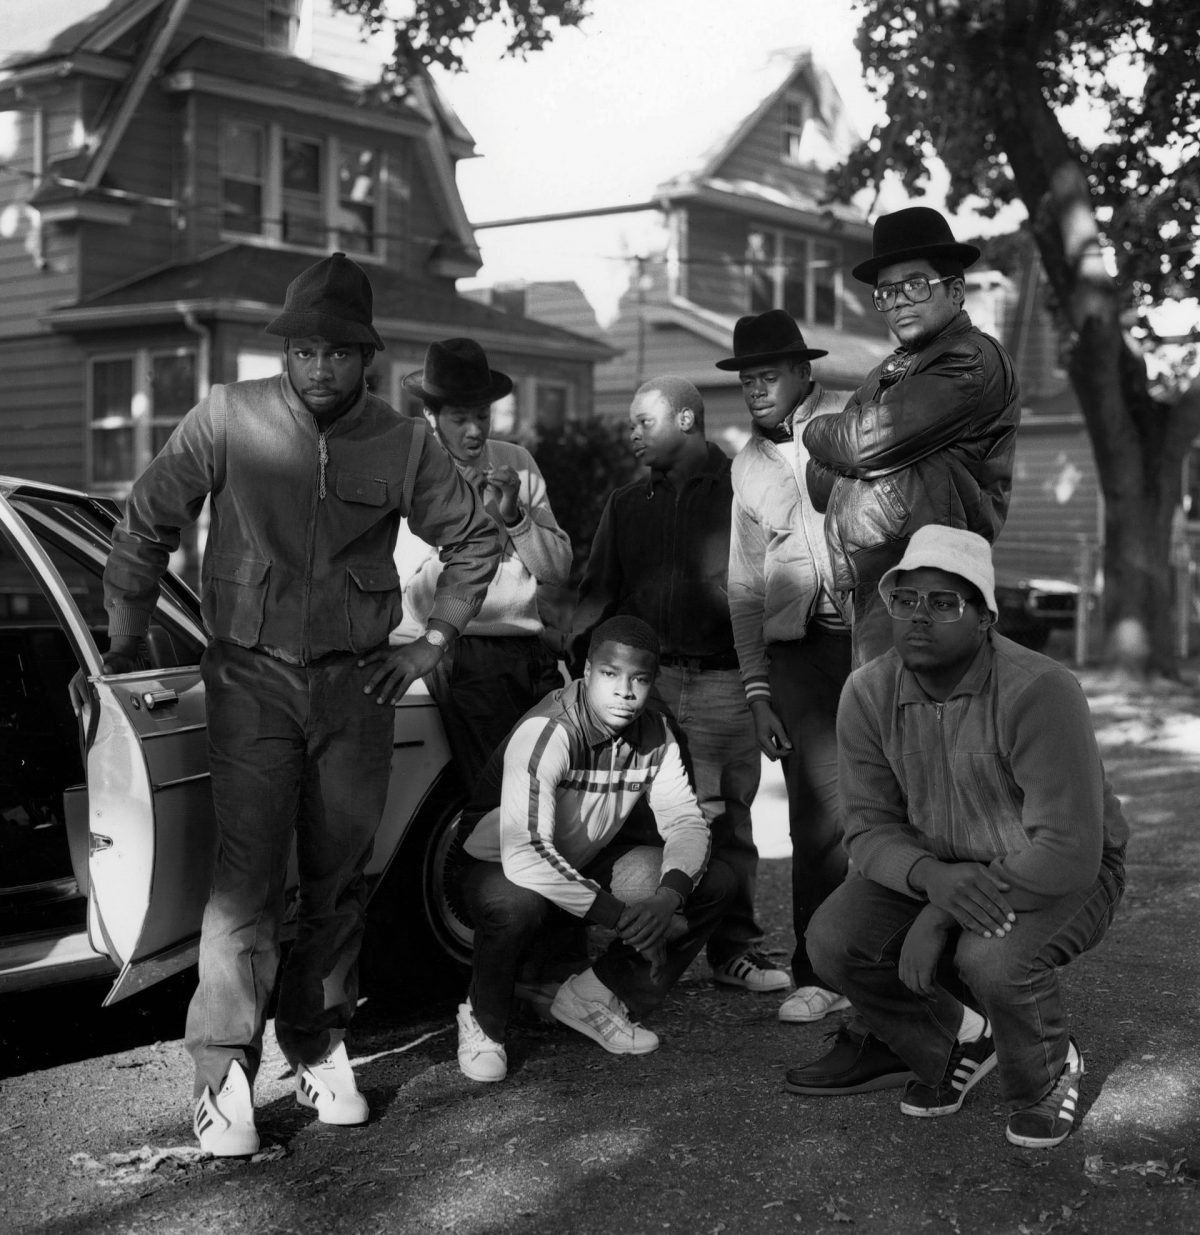 Run DMC and friends, in Queens, 1984 In 1984, Janette Beckman got an assignment from the Face to photograph 'a new group called Run DMC'. She says: 'I called the number they gave me, Jam Master Jay's mum's house. We met at the Hollis subway station and Jay walked me to the street where they lived. The group were hanging out with friends, I started to take photos – this was maybe my second shot. Seems like a moment in time, they looked perfect in their Kangols, Cazals and Adidas' Photograph: Janette Beckman/Redferns